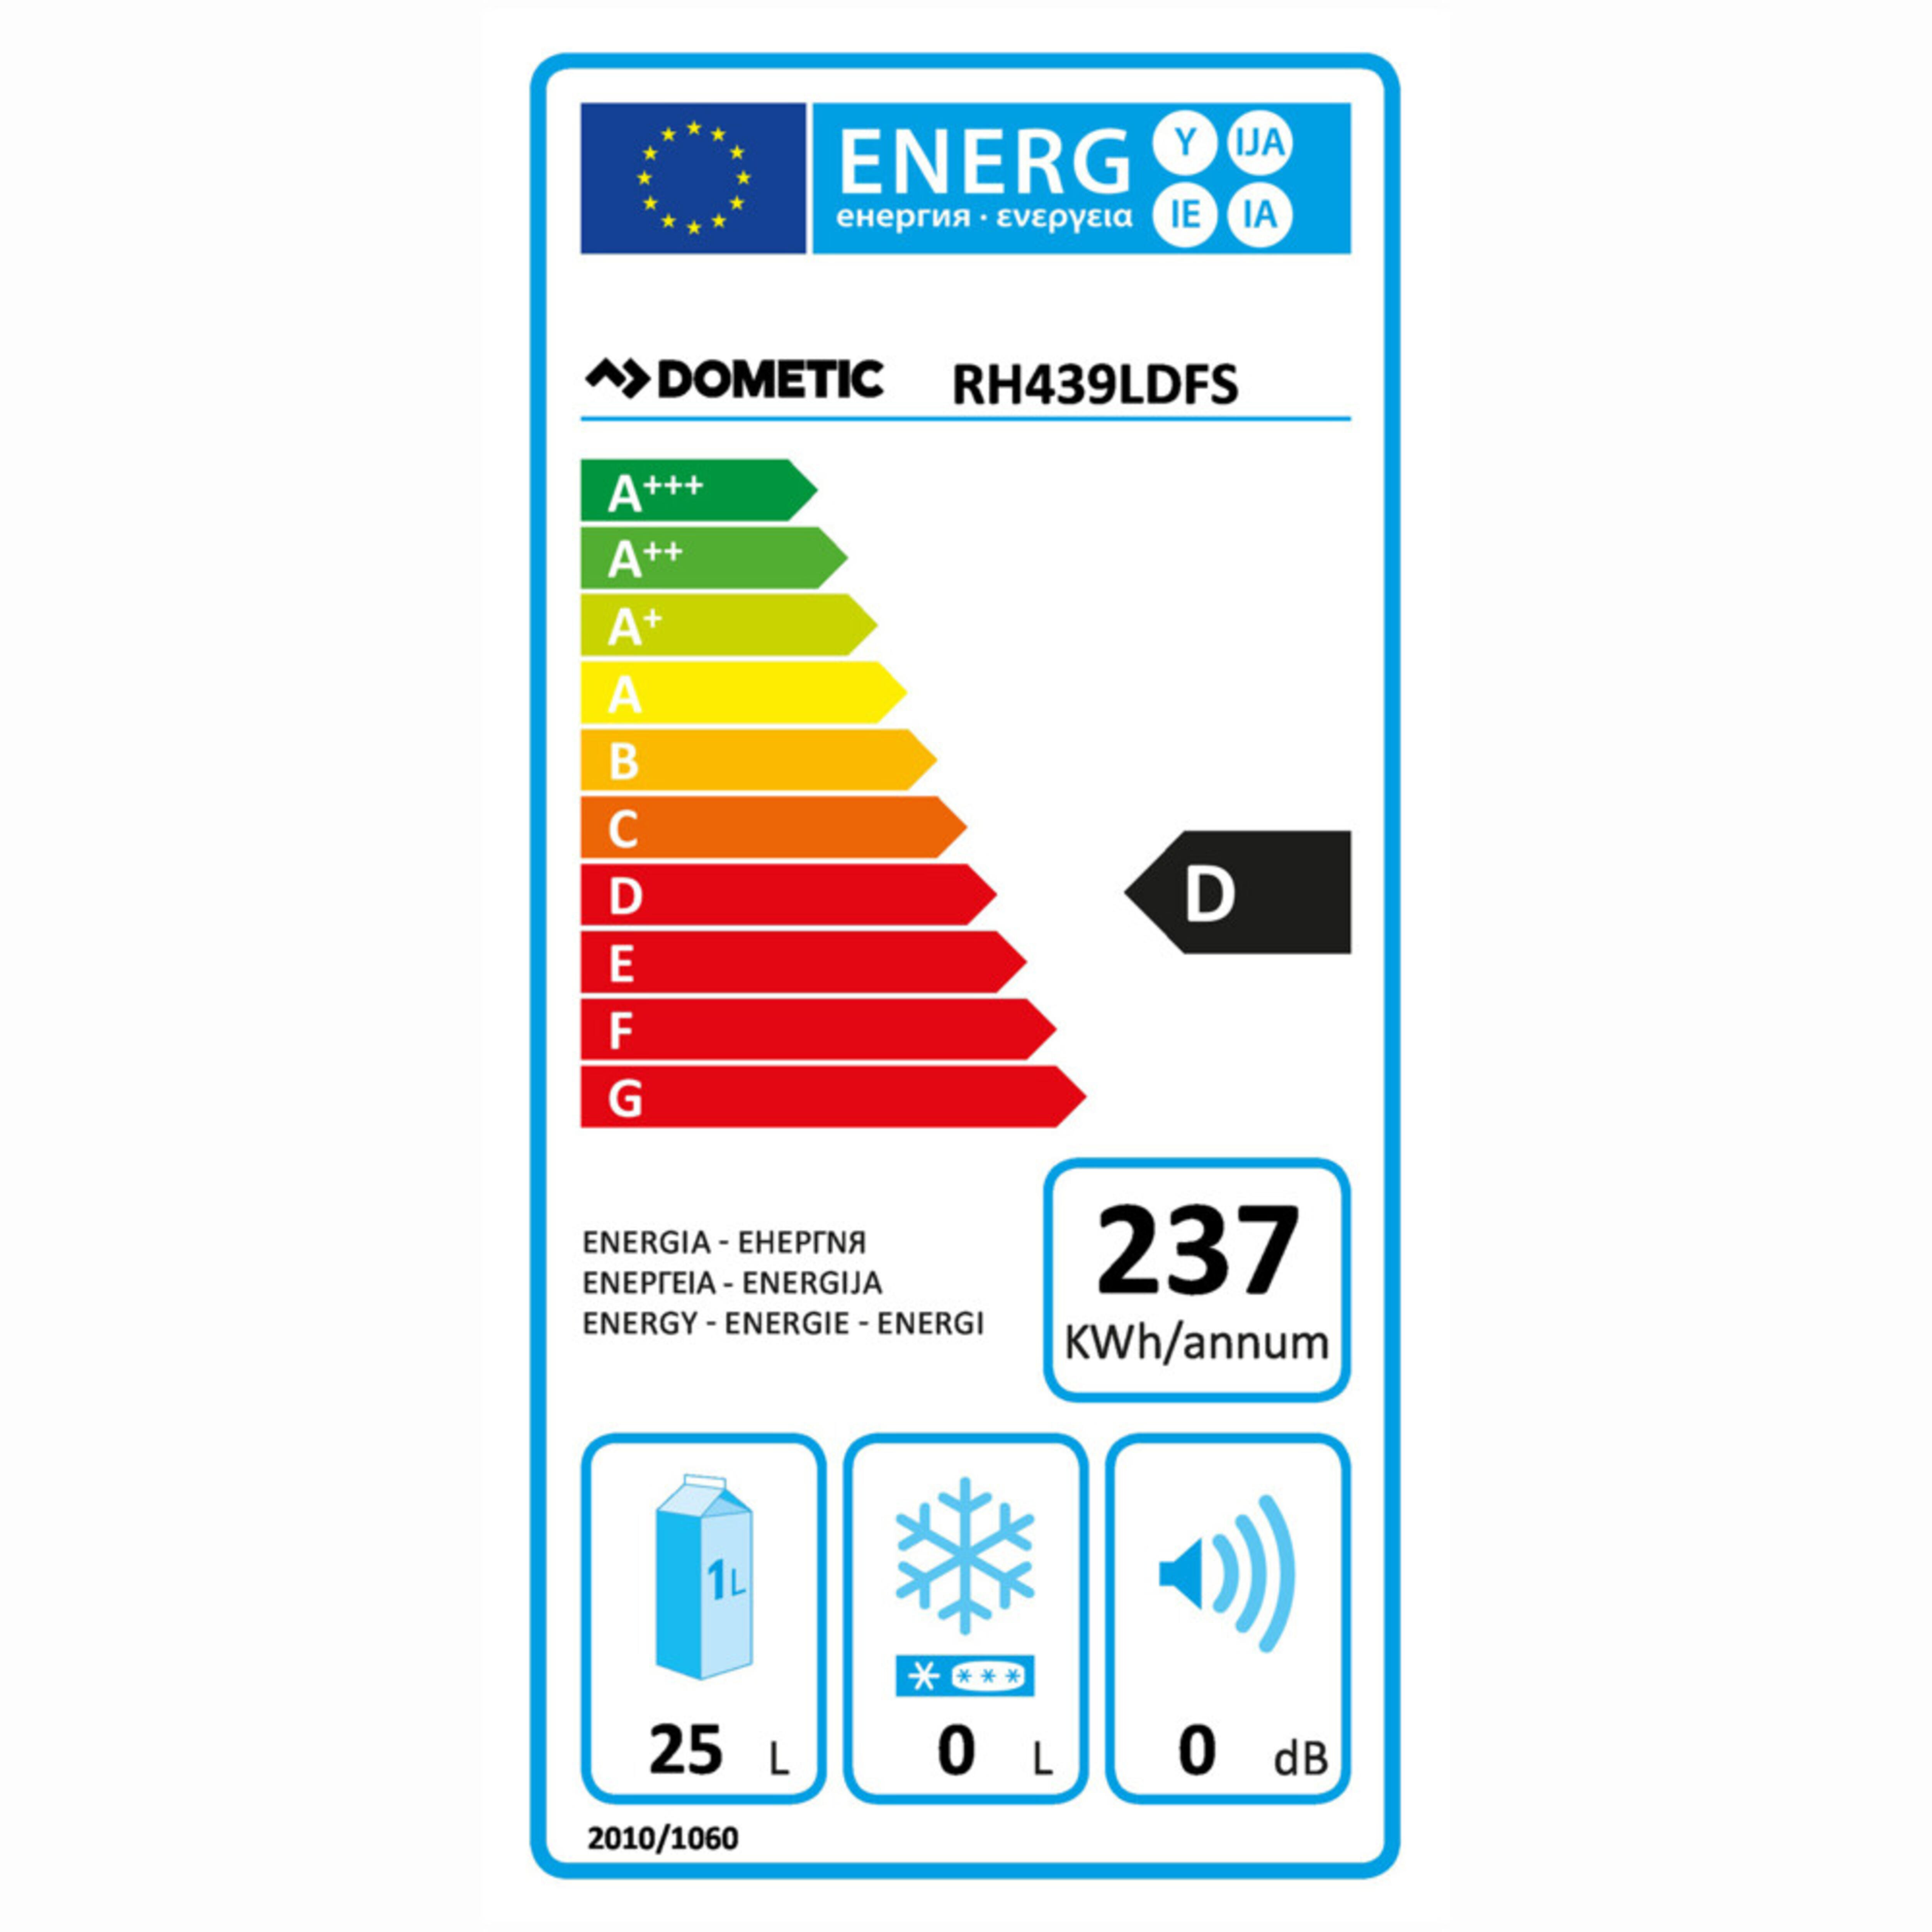 Dometic RH 439 LDFS Energy label